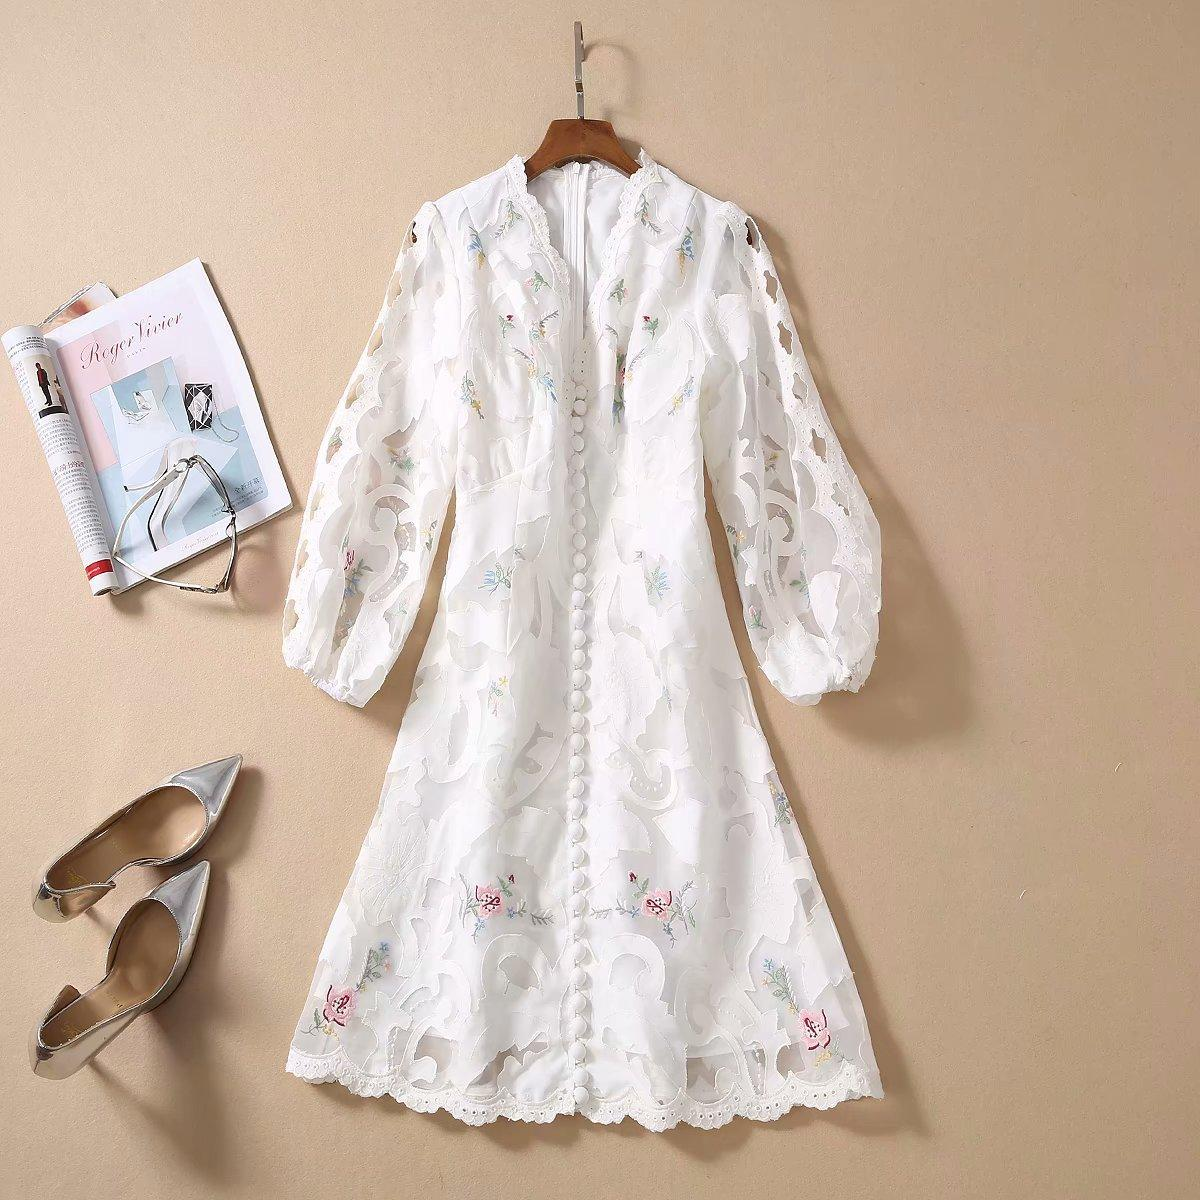 2020 Spring Summer Three-Quarter Sleeves V Neck White Floral Print Lace Embroidery Panelled Short Mini Dress Luxury Runway Dresses A052305A2